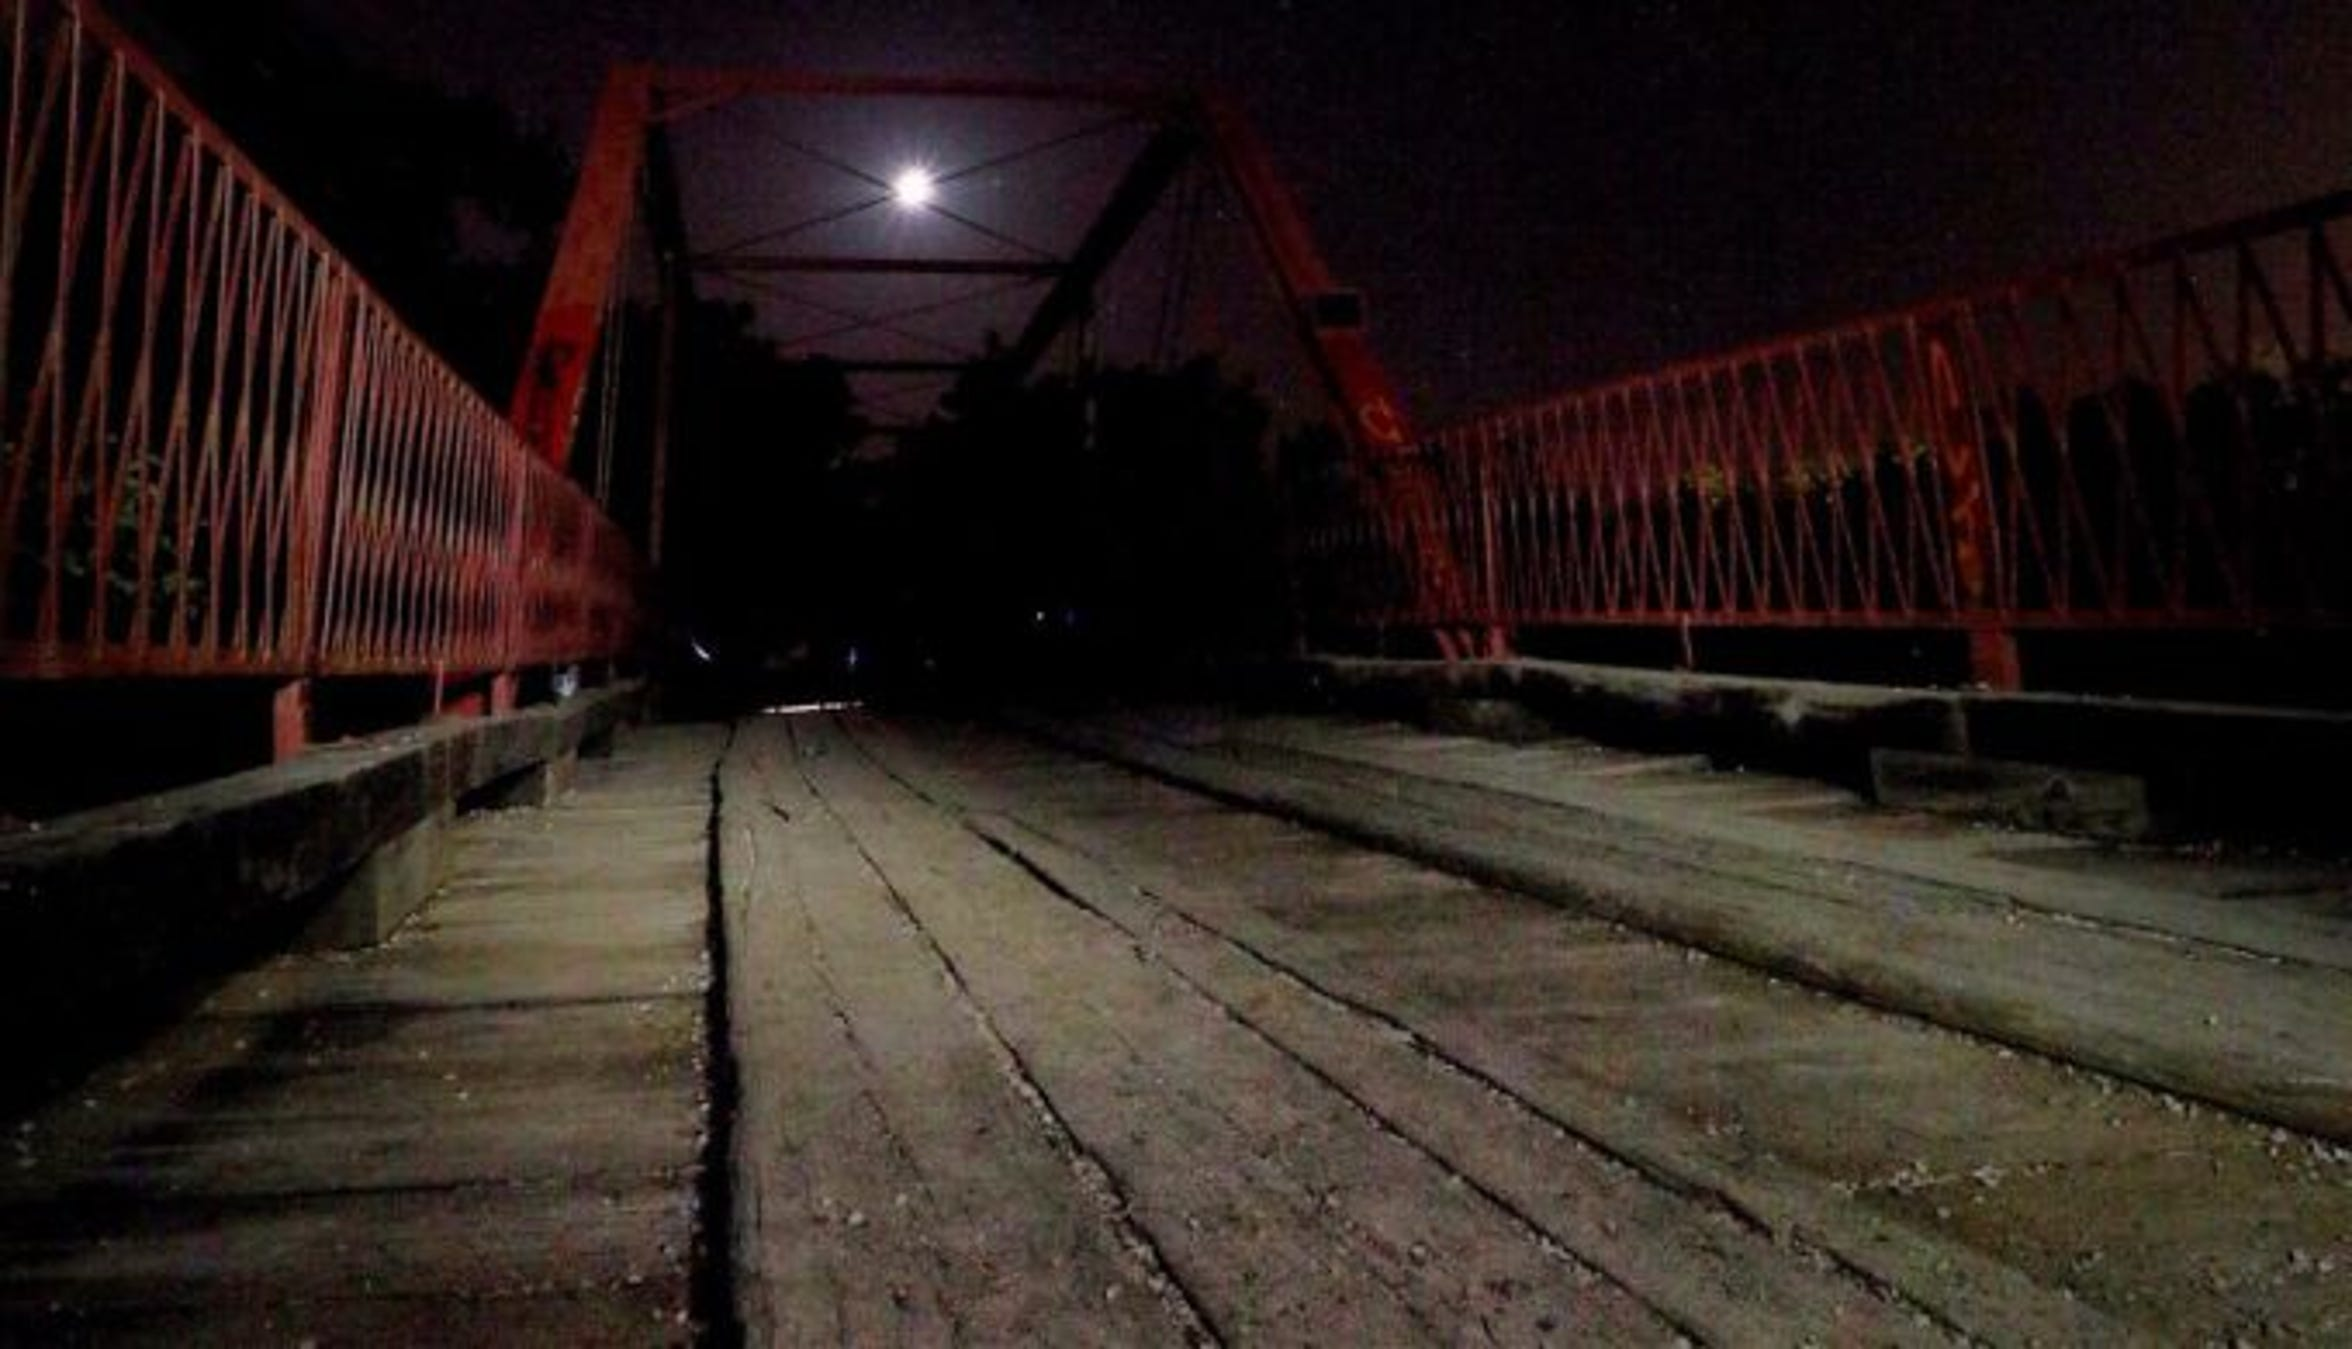 Old Alton Bridge, also known as Goatman's Bridge, in Denton